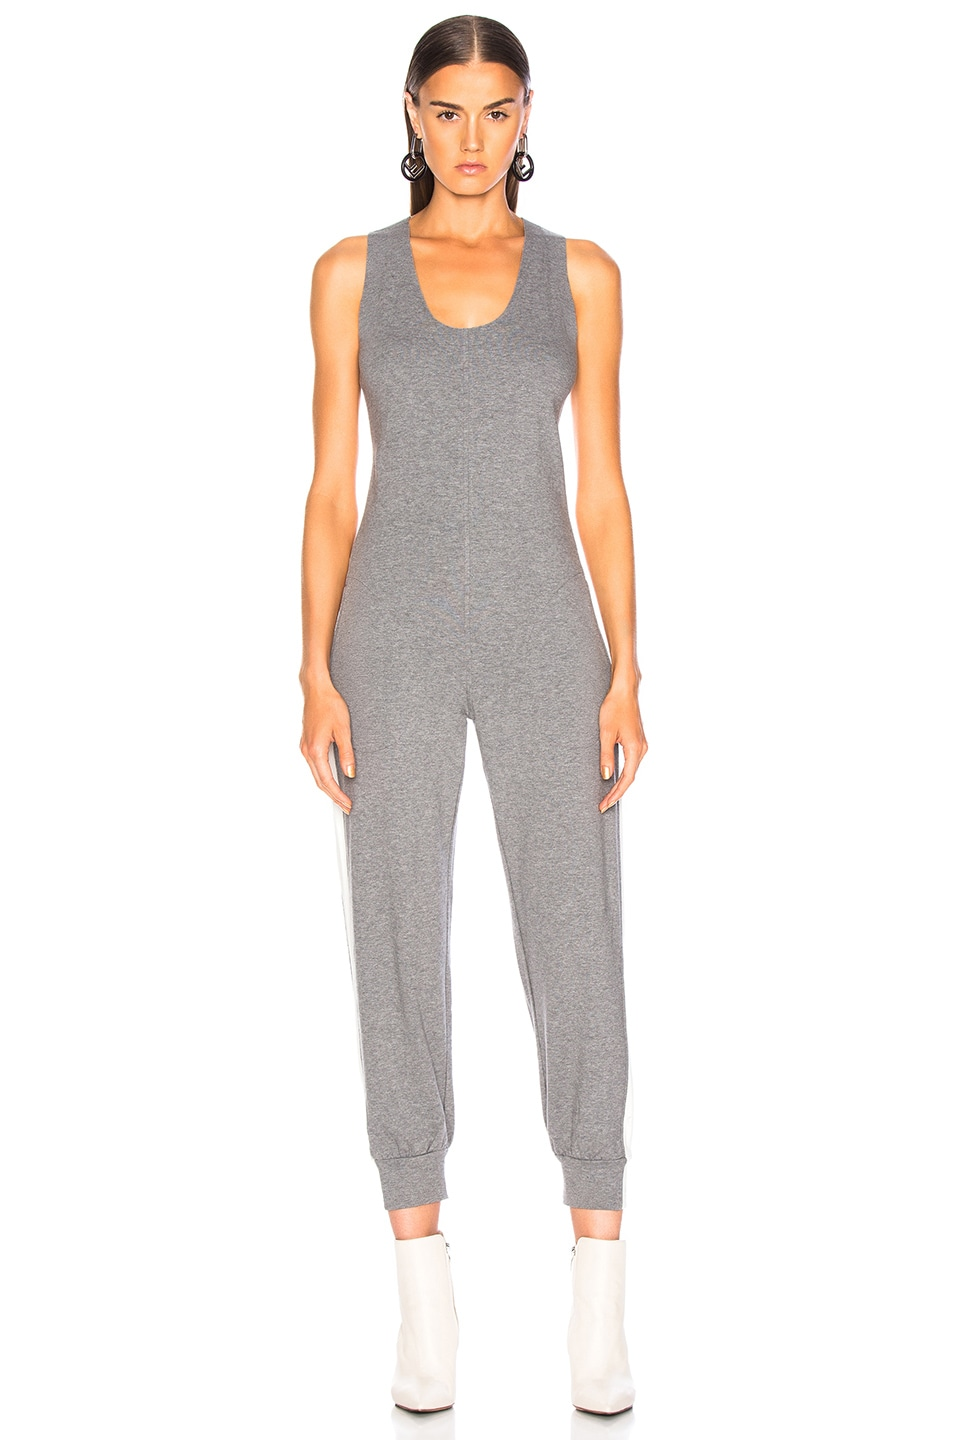 Image 2 of Norma Kamali Side Stripe Cross Back Jog Jumpsuit in Medium Heather Grey & Almost White